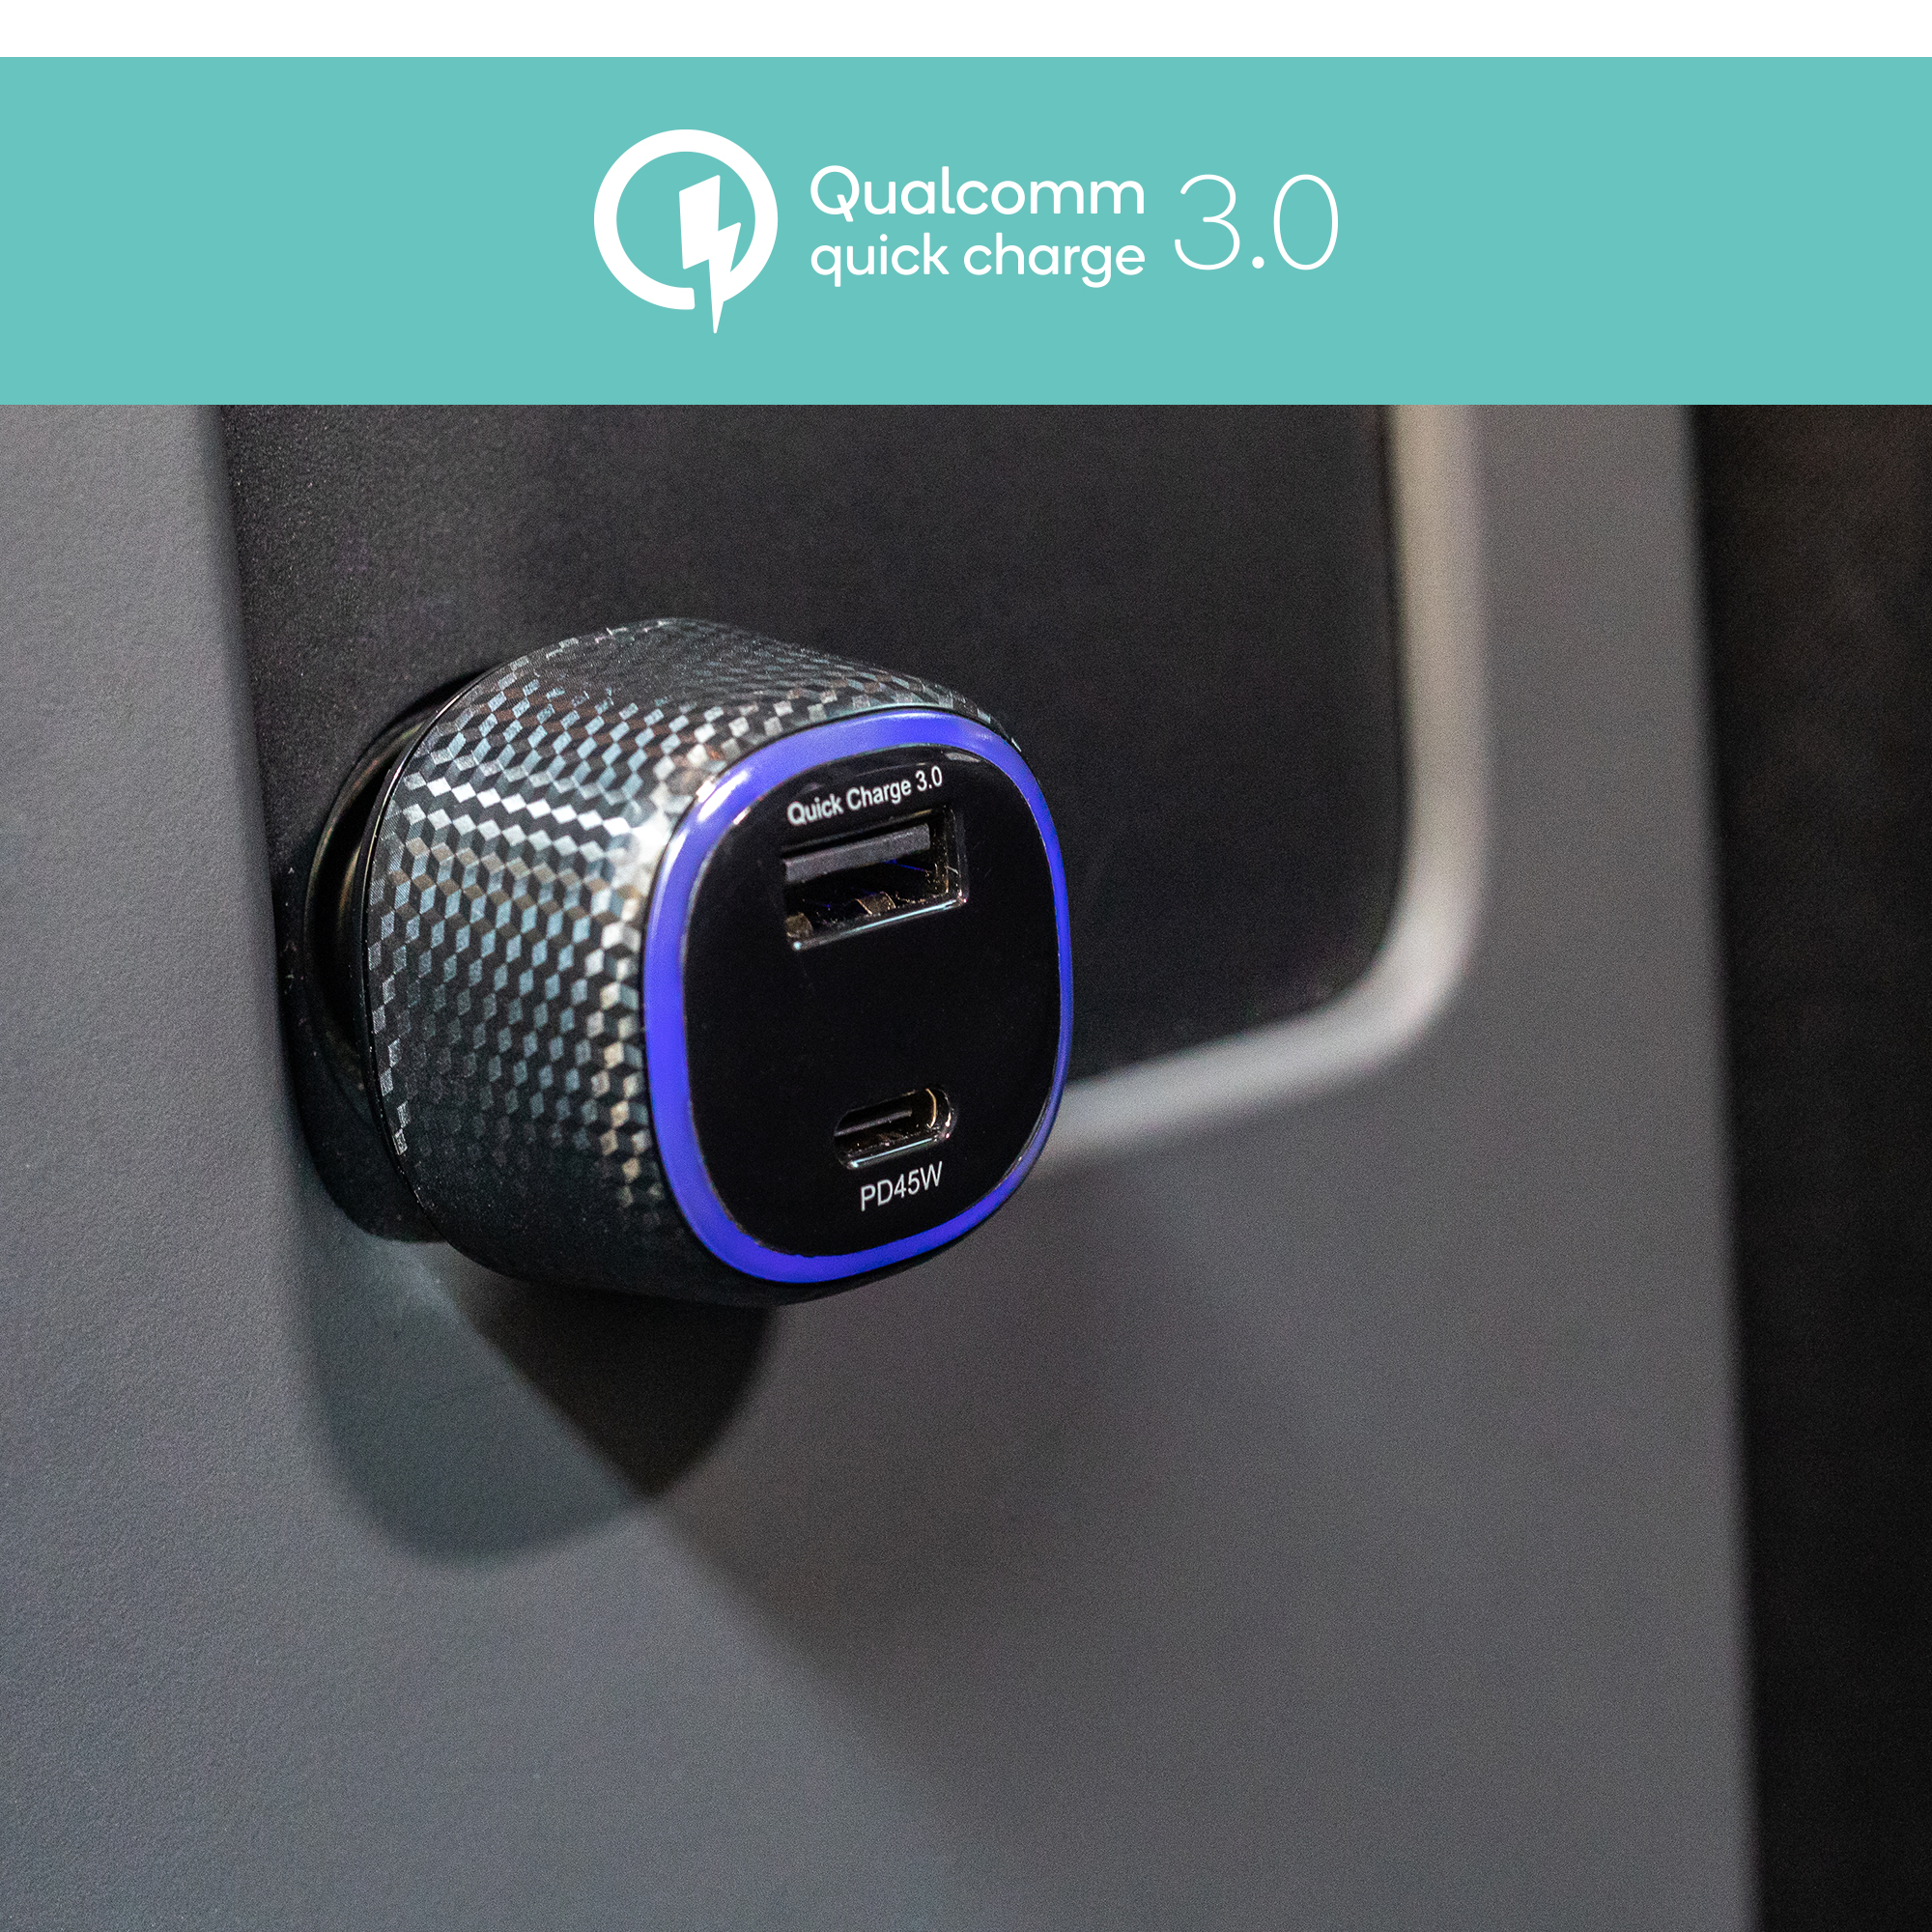 Quick Charge 3.0対応で超速充電